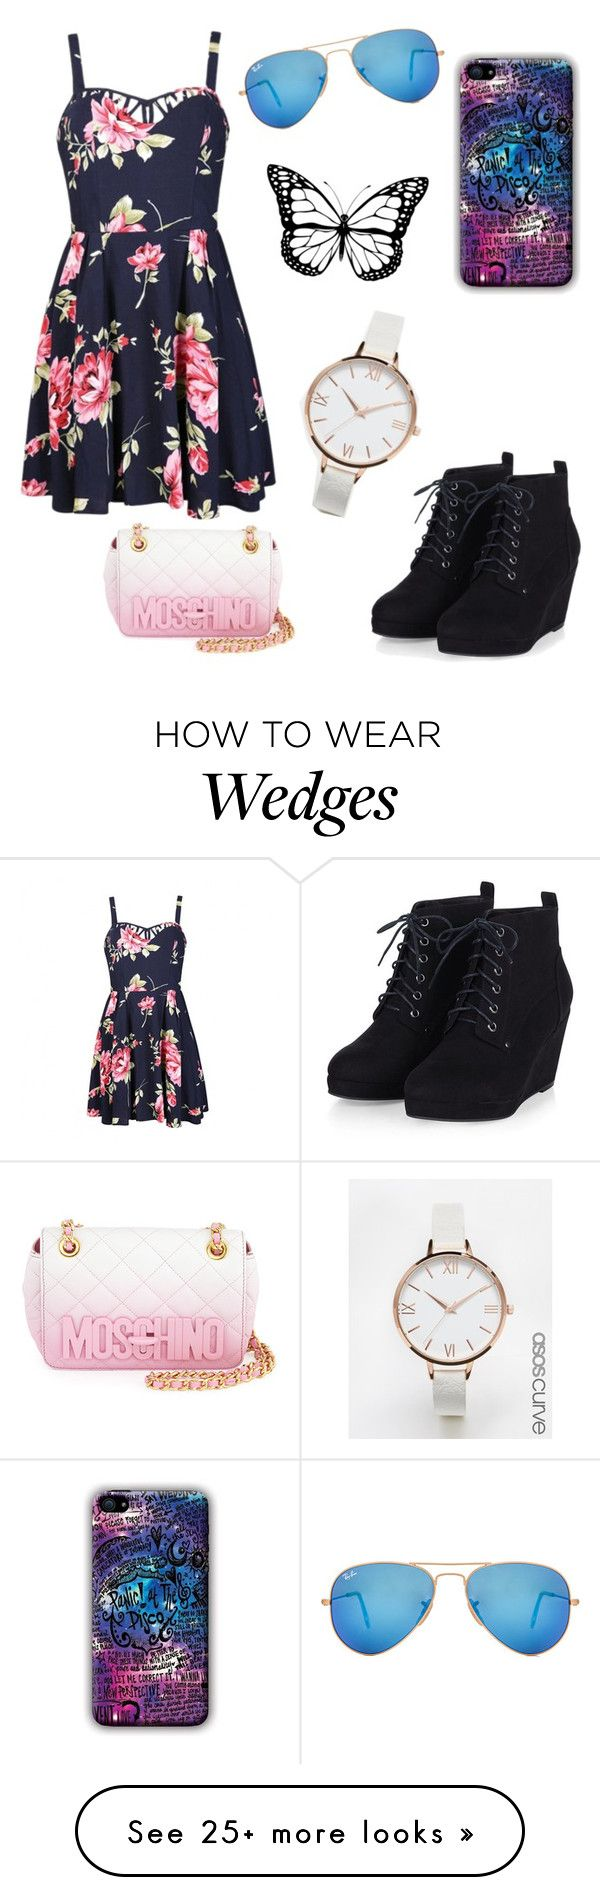 """""""Untitled #73"""" by melody57 on Polyvore featuring Ally Fashion, Ray-Ban, Moschino, ASOS Curve, women's clothing, women, female, woman, misses and juniors"""